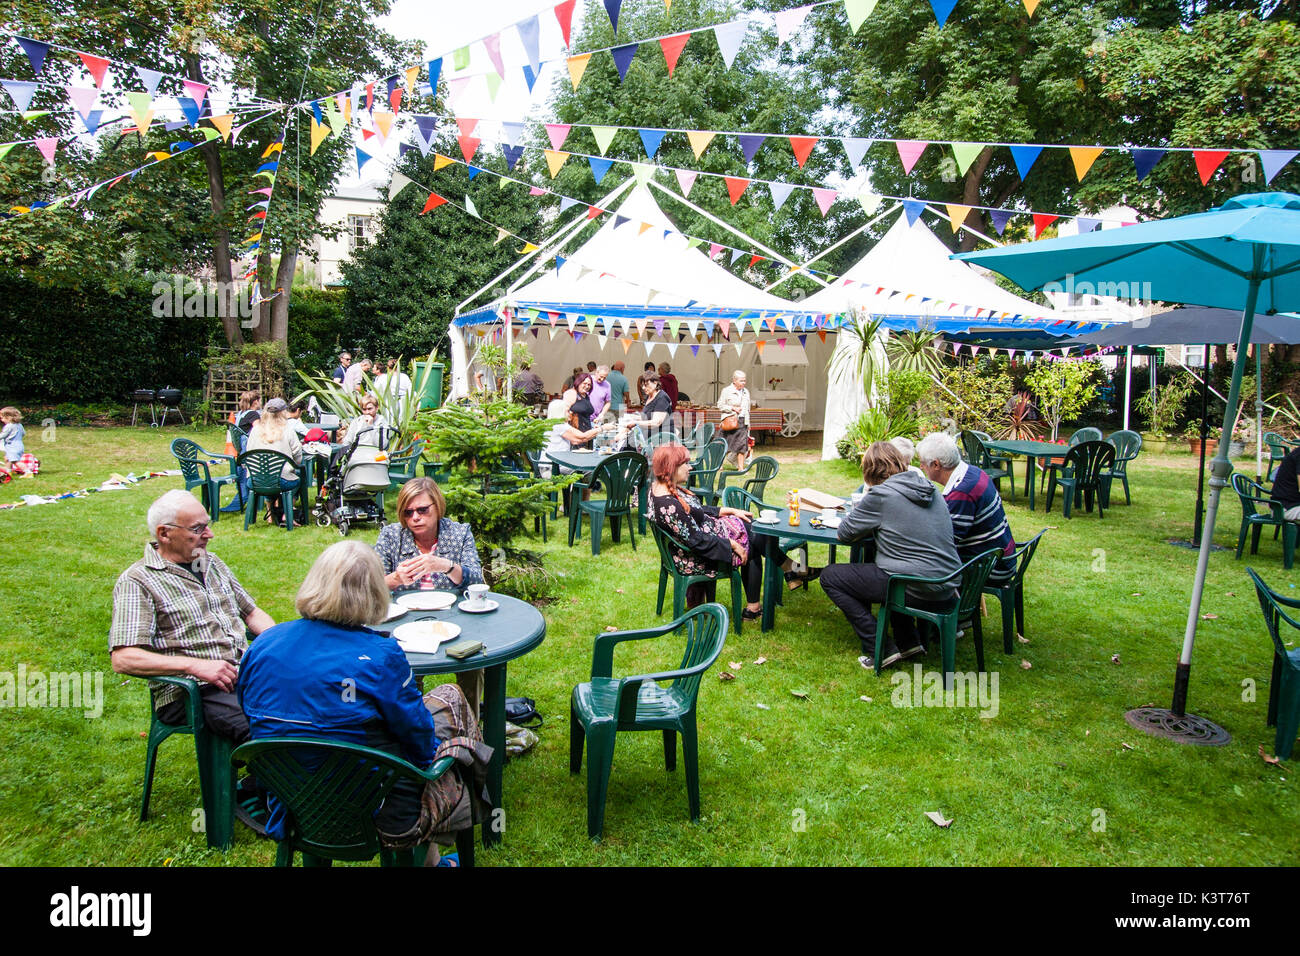 England Ramsgate Addington Street Fair. Afternoon tea on the lawn in Vale Square. People sitting at tables drinking teas and other drinks with Marque tent ... & England Ramsgate Addington Street Fair. Afternoon tea on the ...